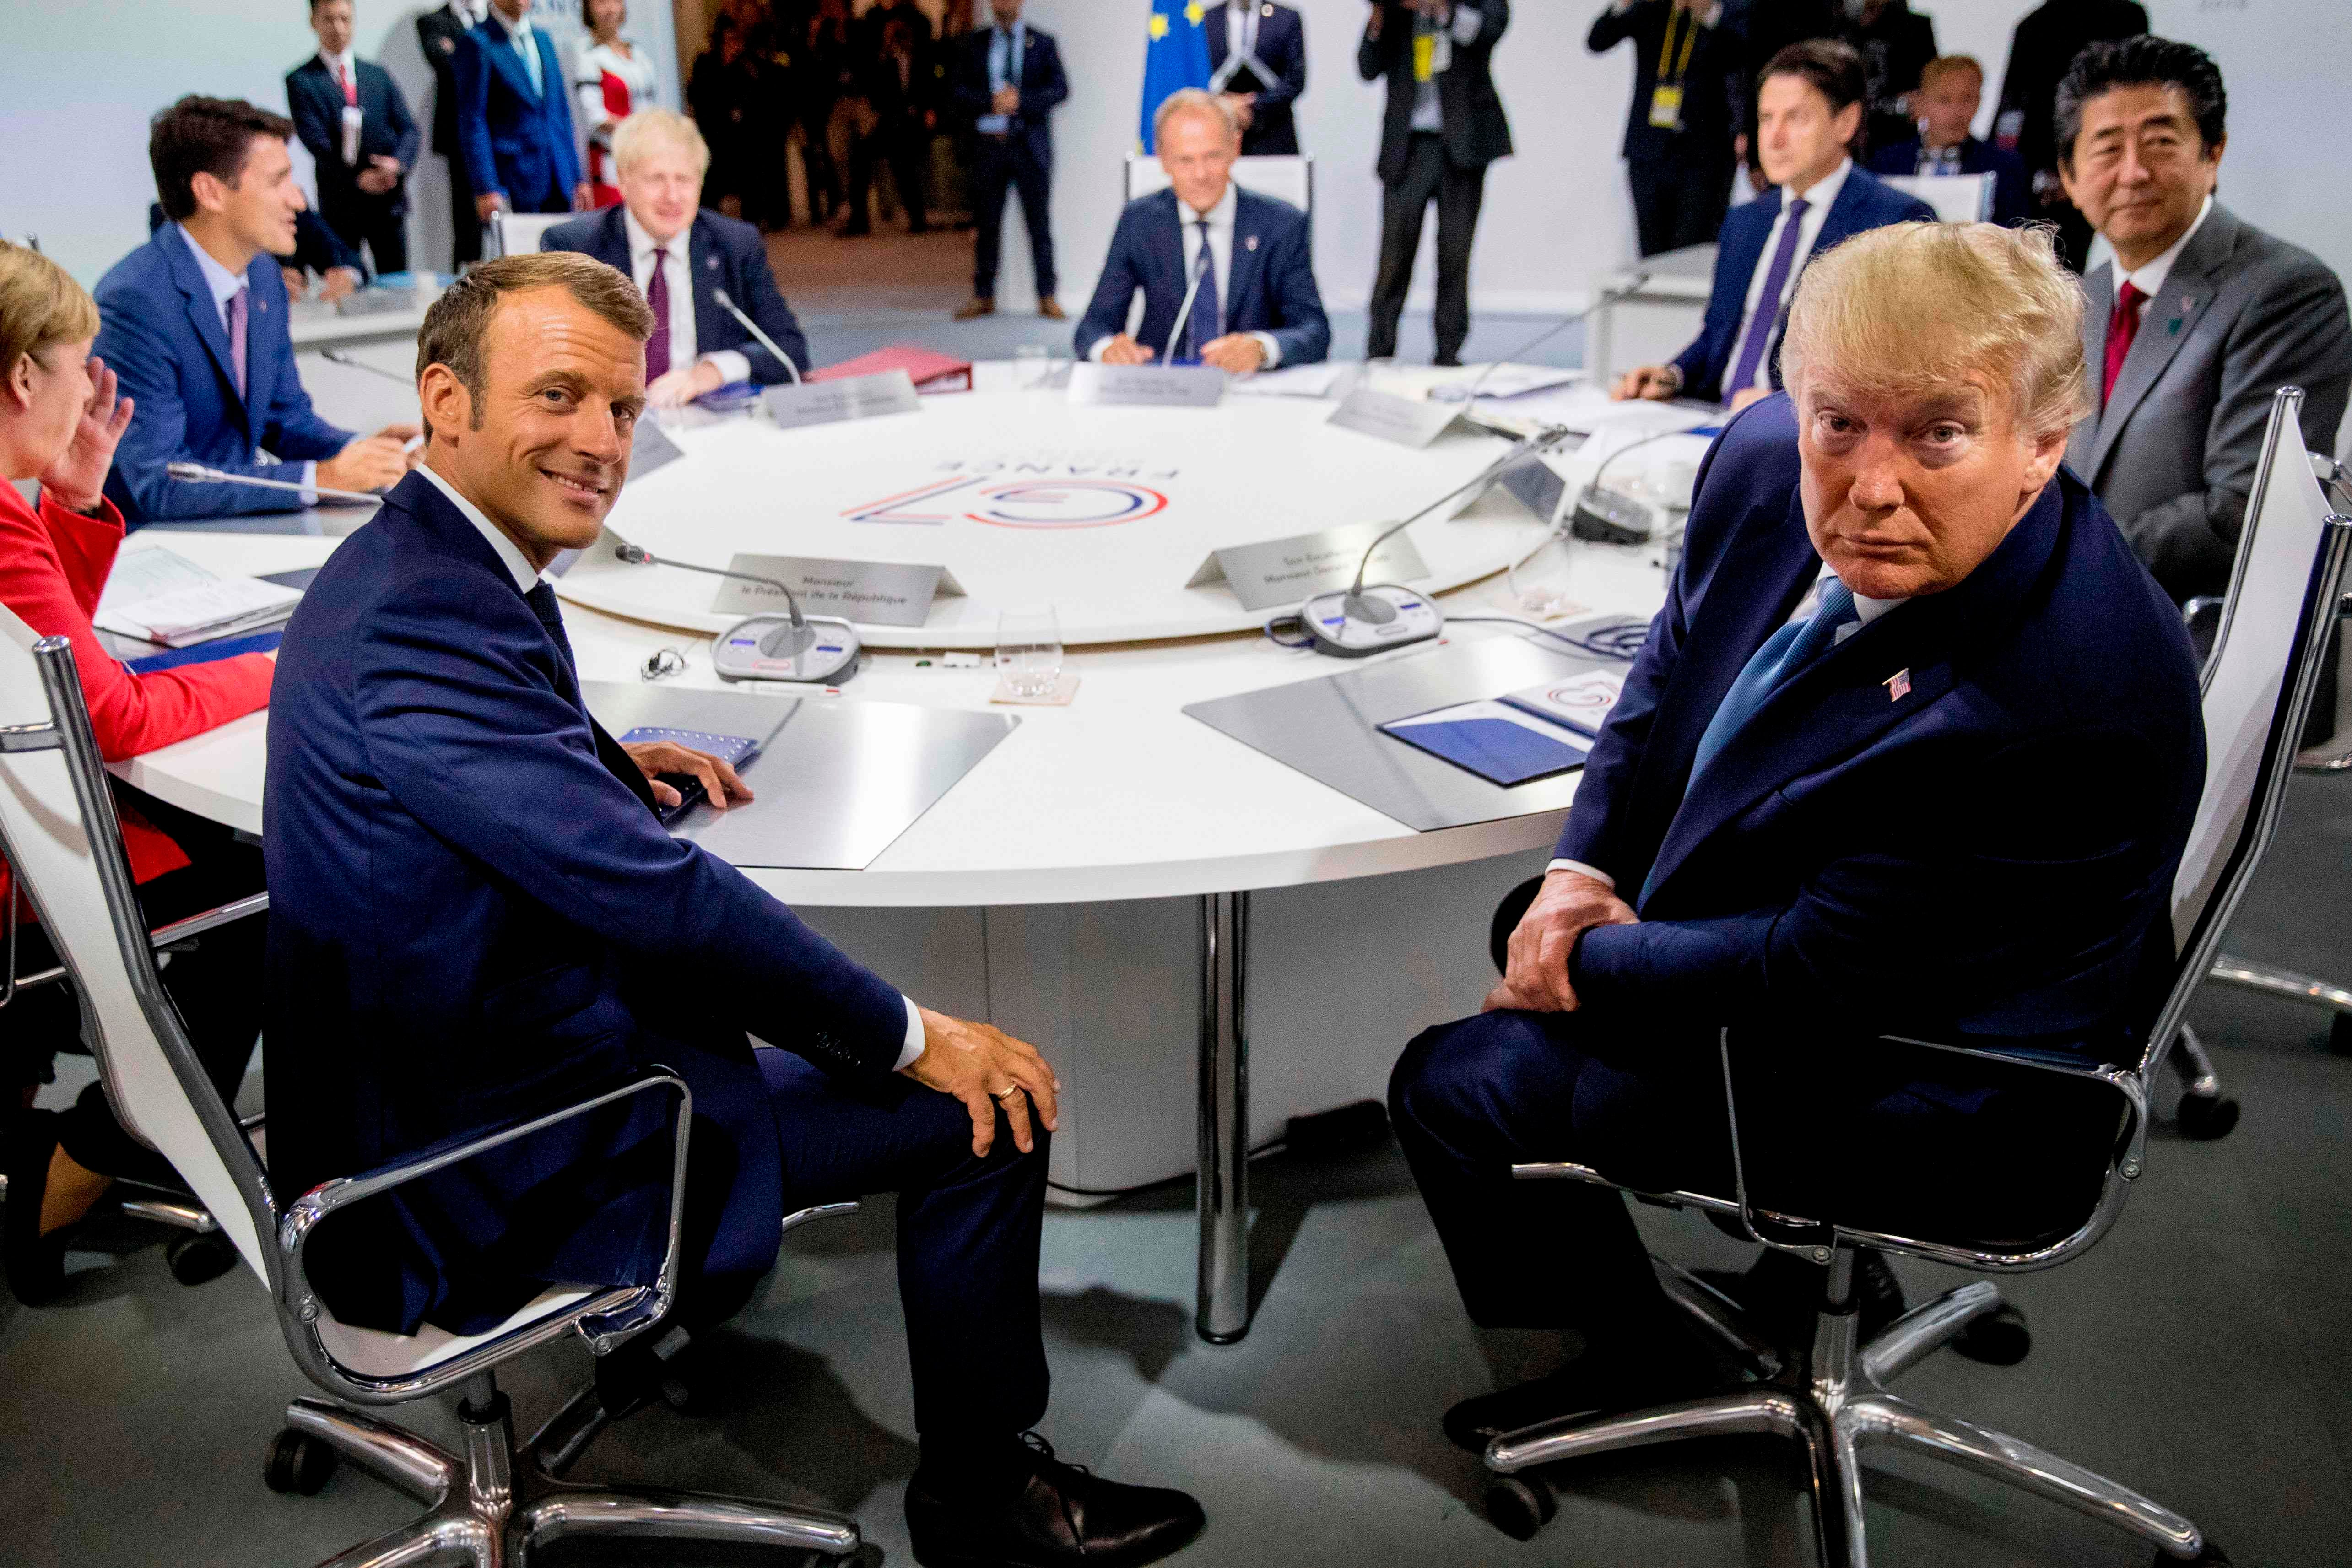 Behind-the-scenes discord rattles G7 summit despite Donald Trump's claim that all is well